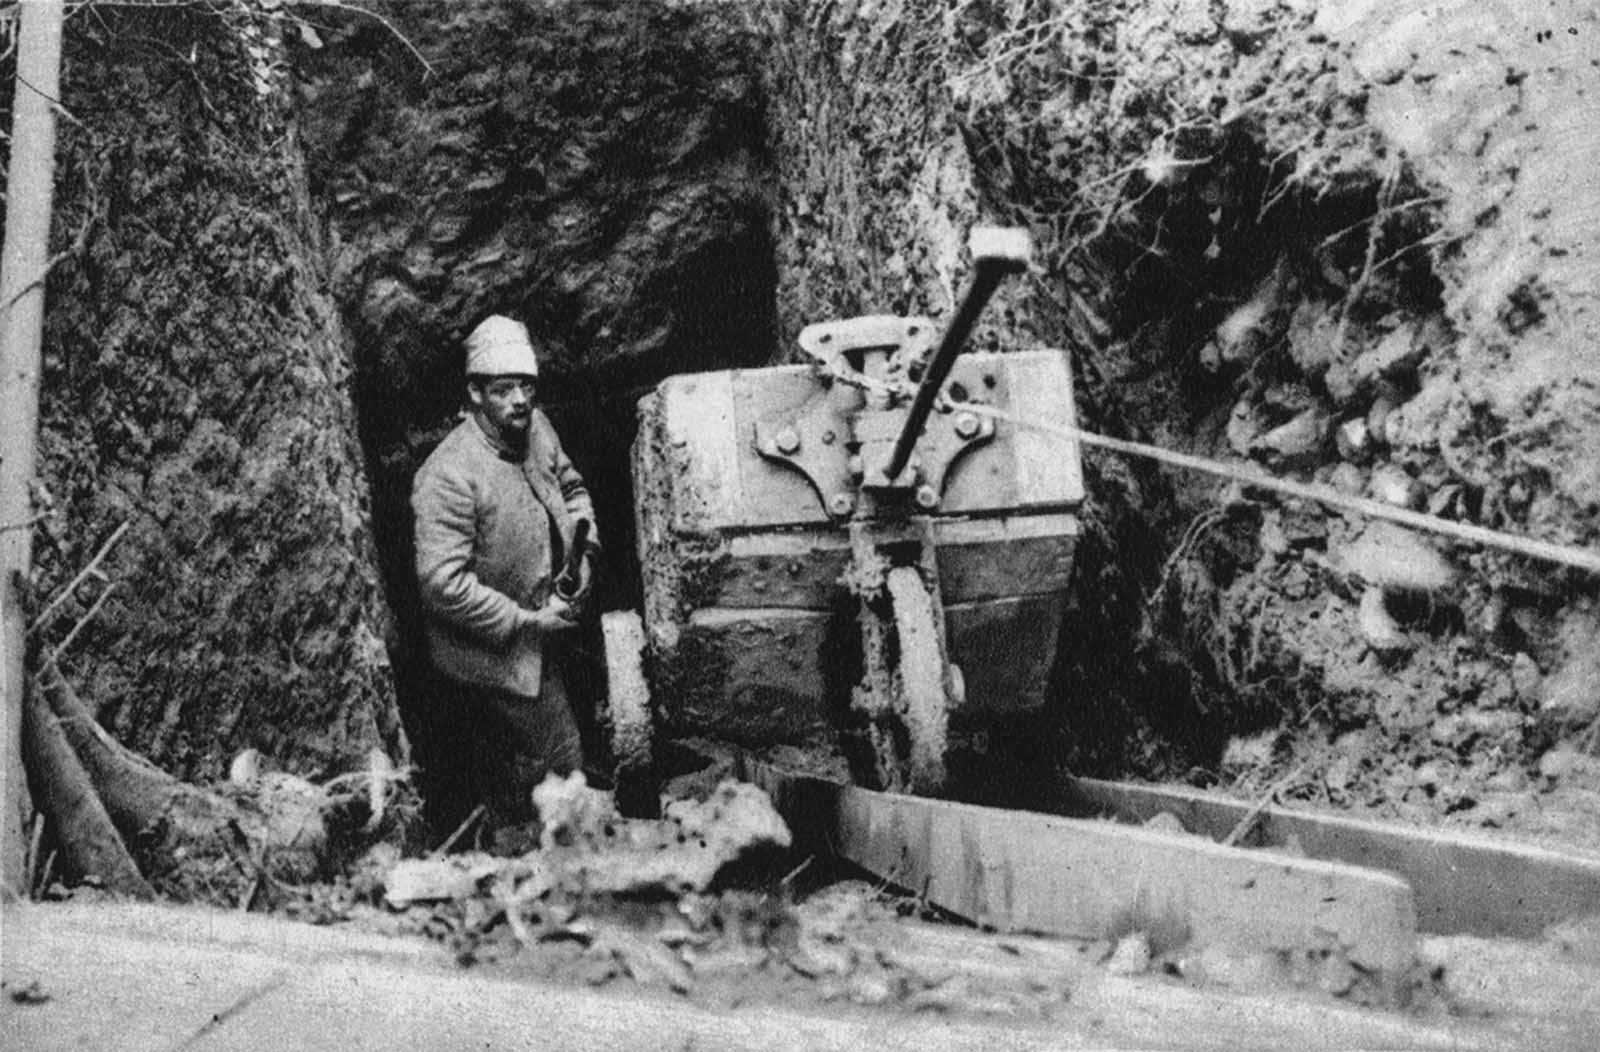 A mine tunnel is dug under the German lines on the Vosges front, on October 19, 1916. The sappers worked at a depth of about 17 meters, until they reached a spot below enemy positions, when large explosives would be placed and later detonated, destroying anything above.